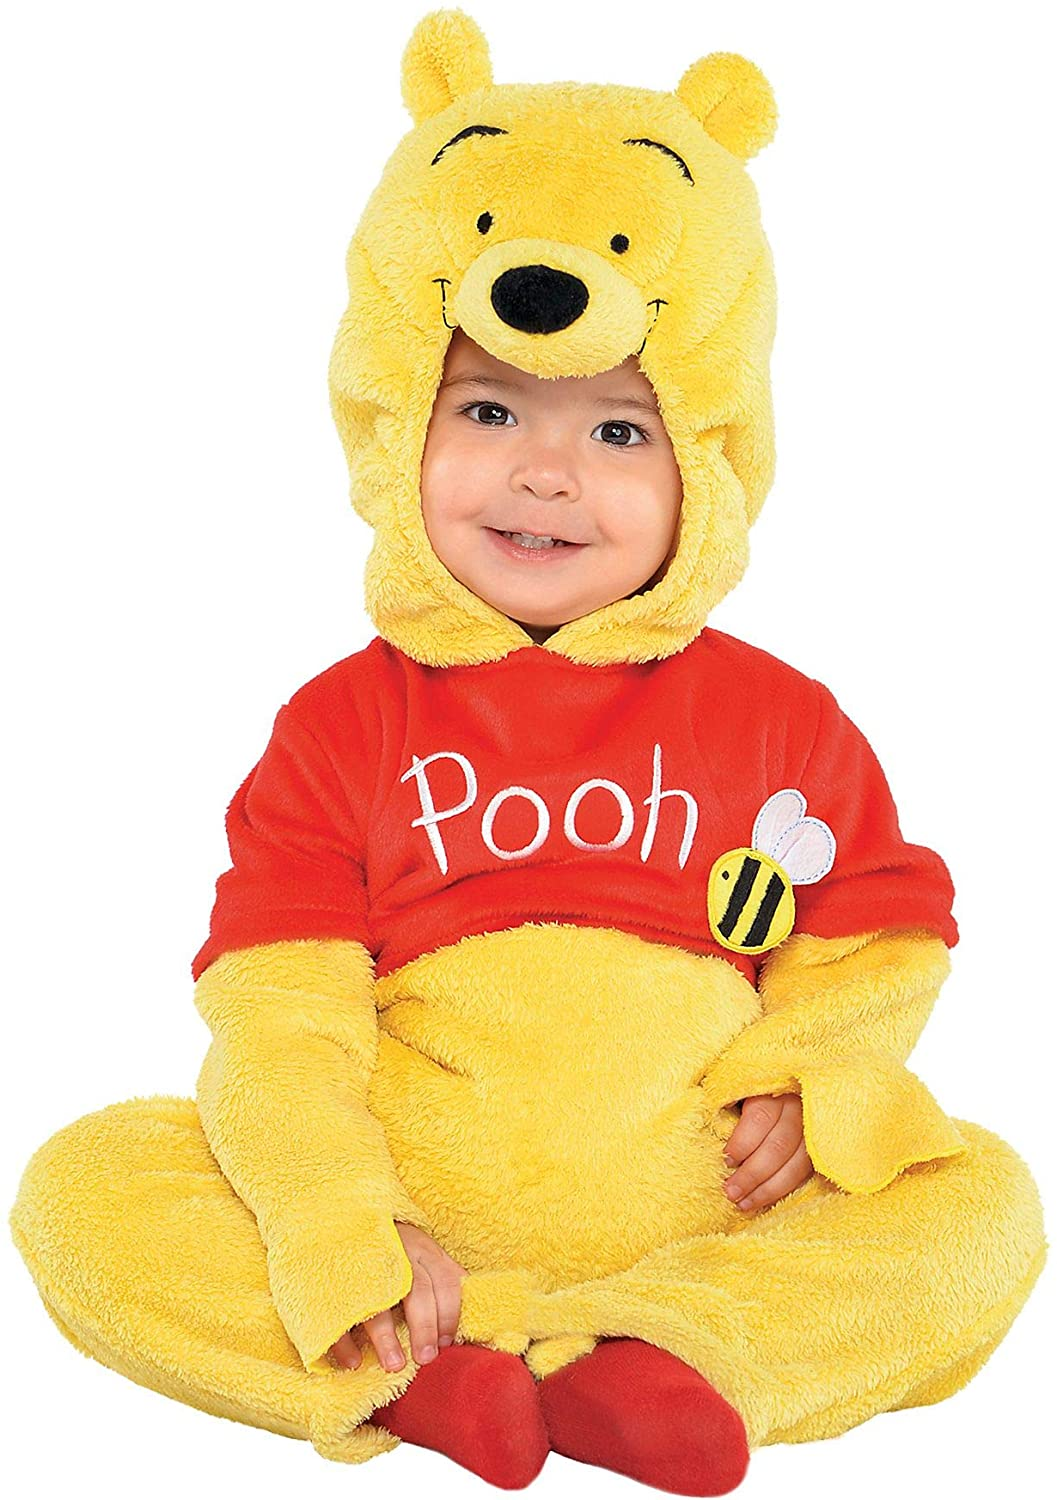 Suit Yourself Winnie the Pooh Costume for Babies, Size 12-24 Months, Includes Soft Jumpsuit and Pooh Face Hood